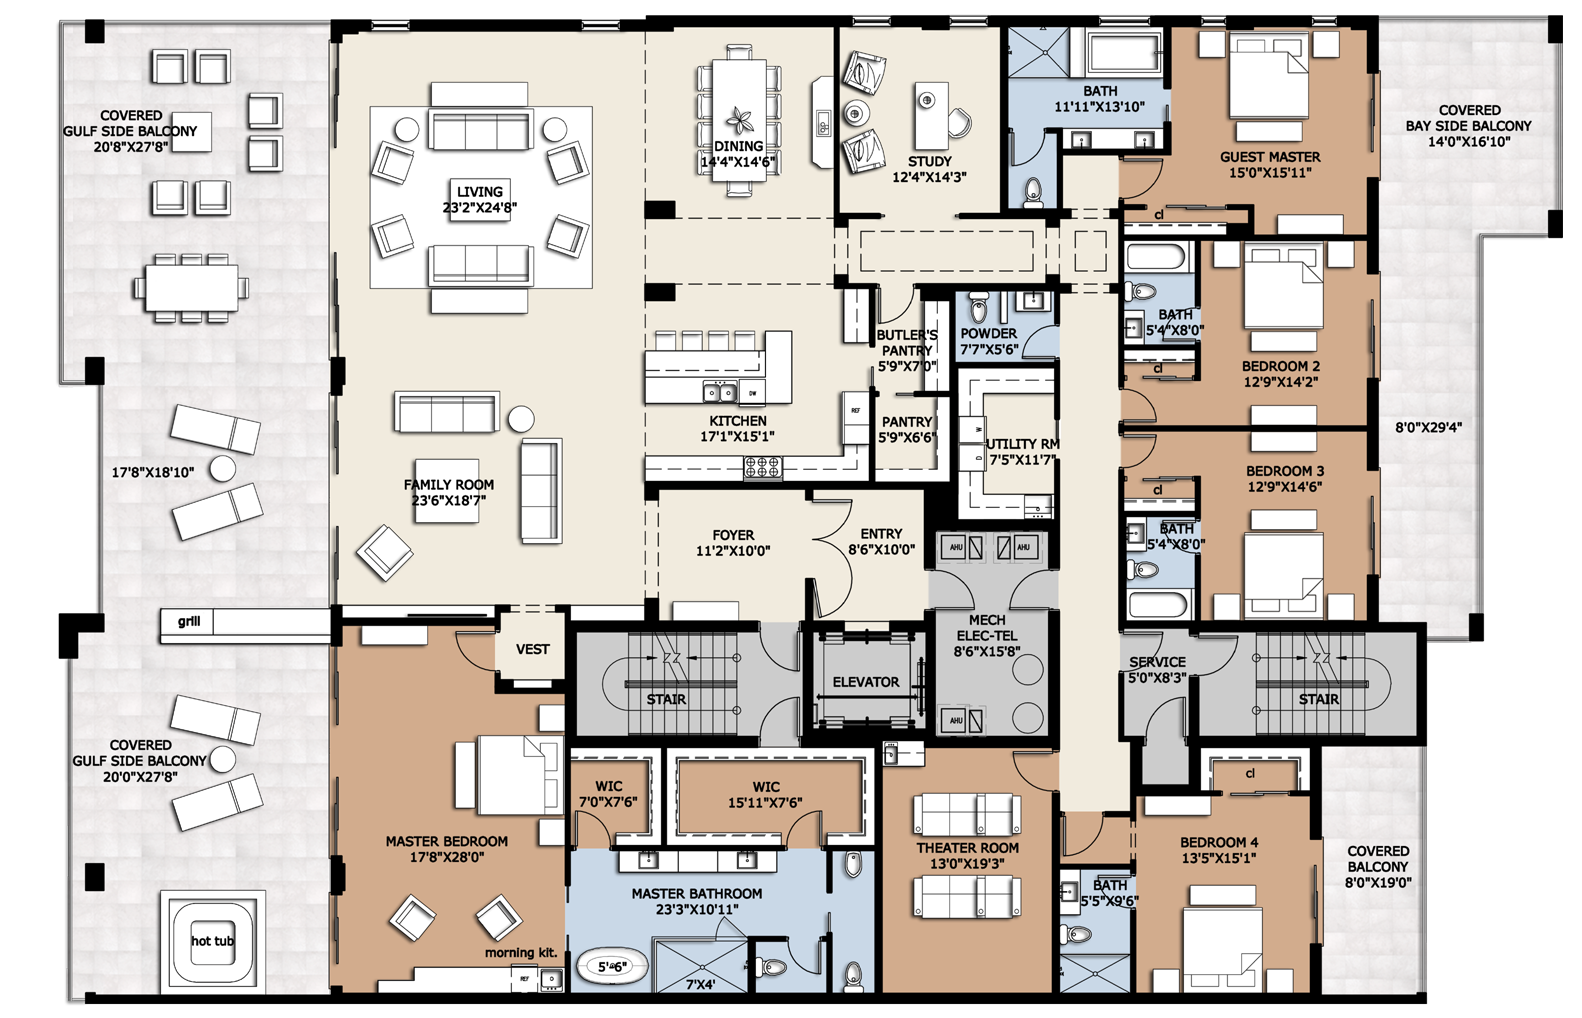 Five bedroom apartment residences penthouse luxury condos for sale site plan floor plan